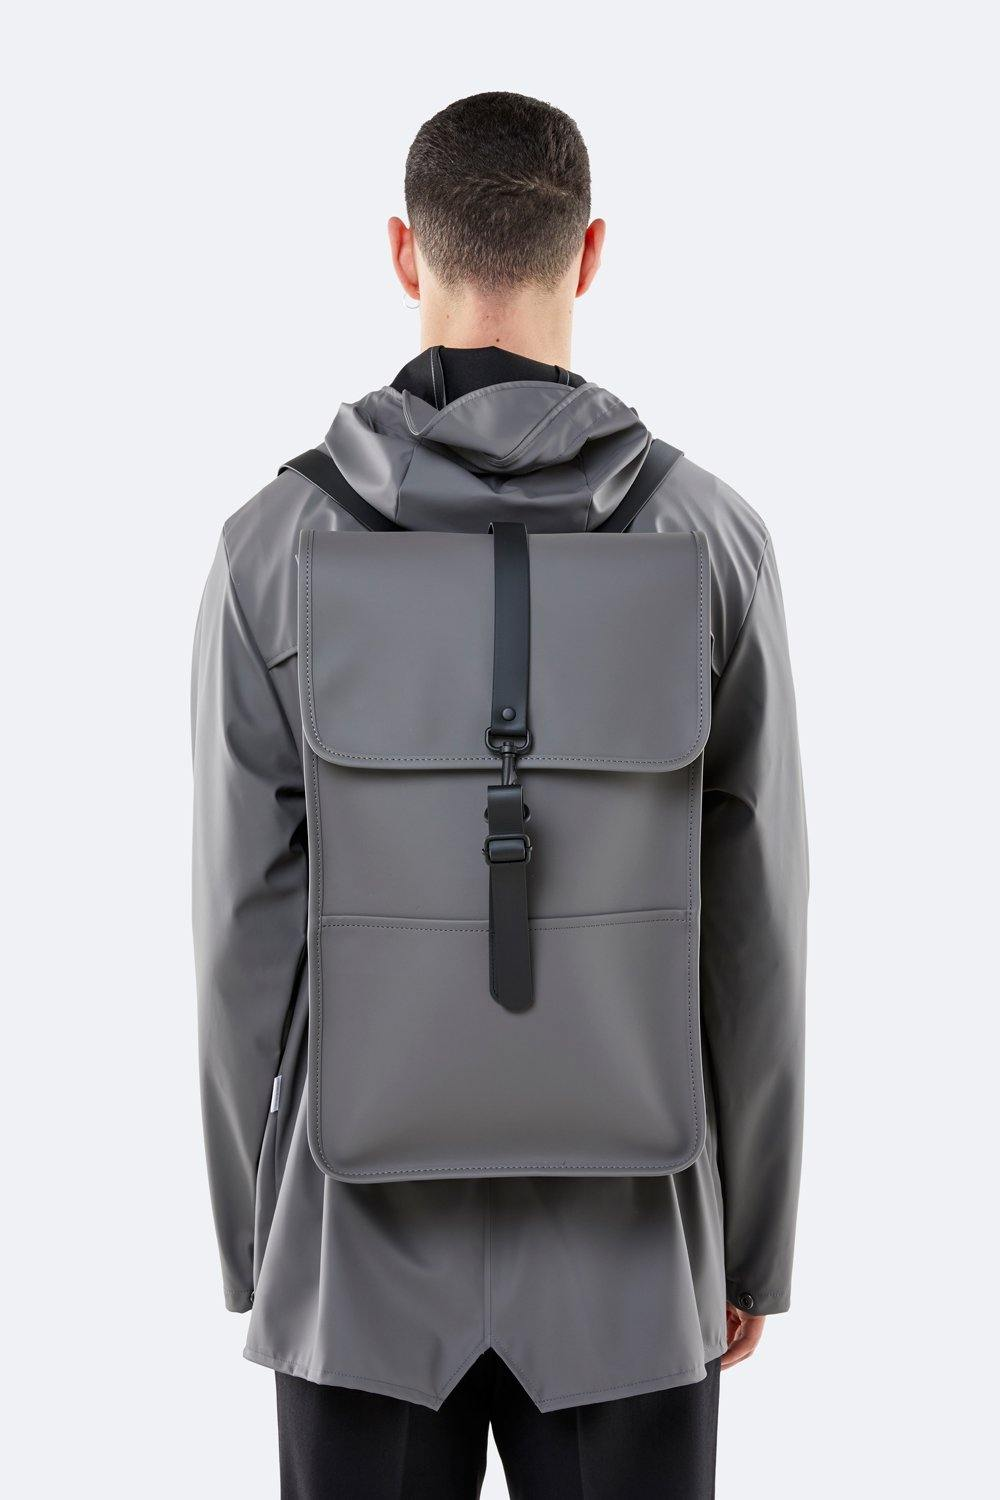 Backpack 1220 - Charcoal